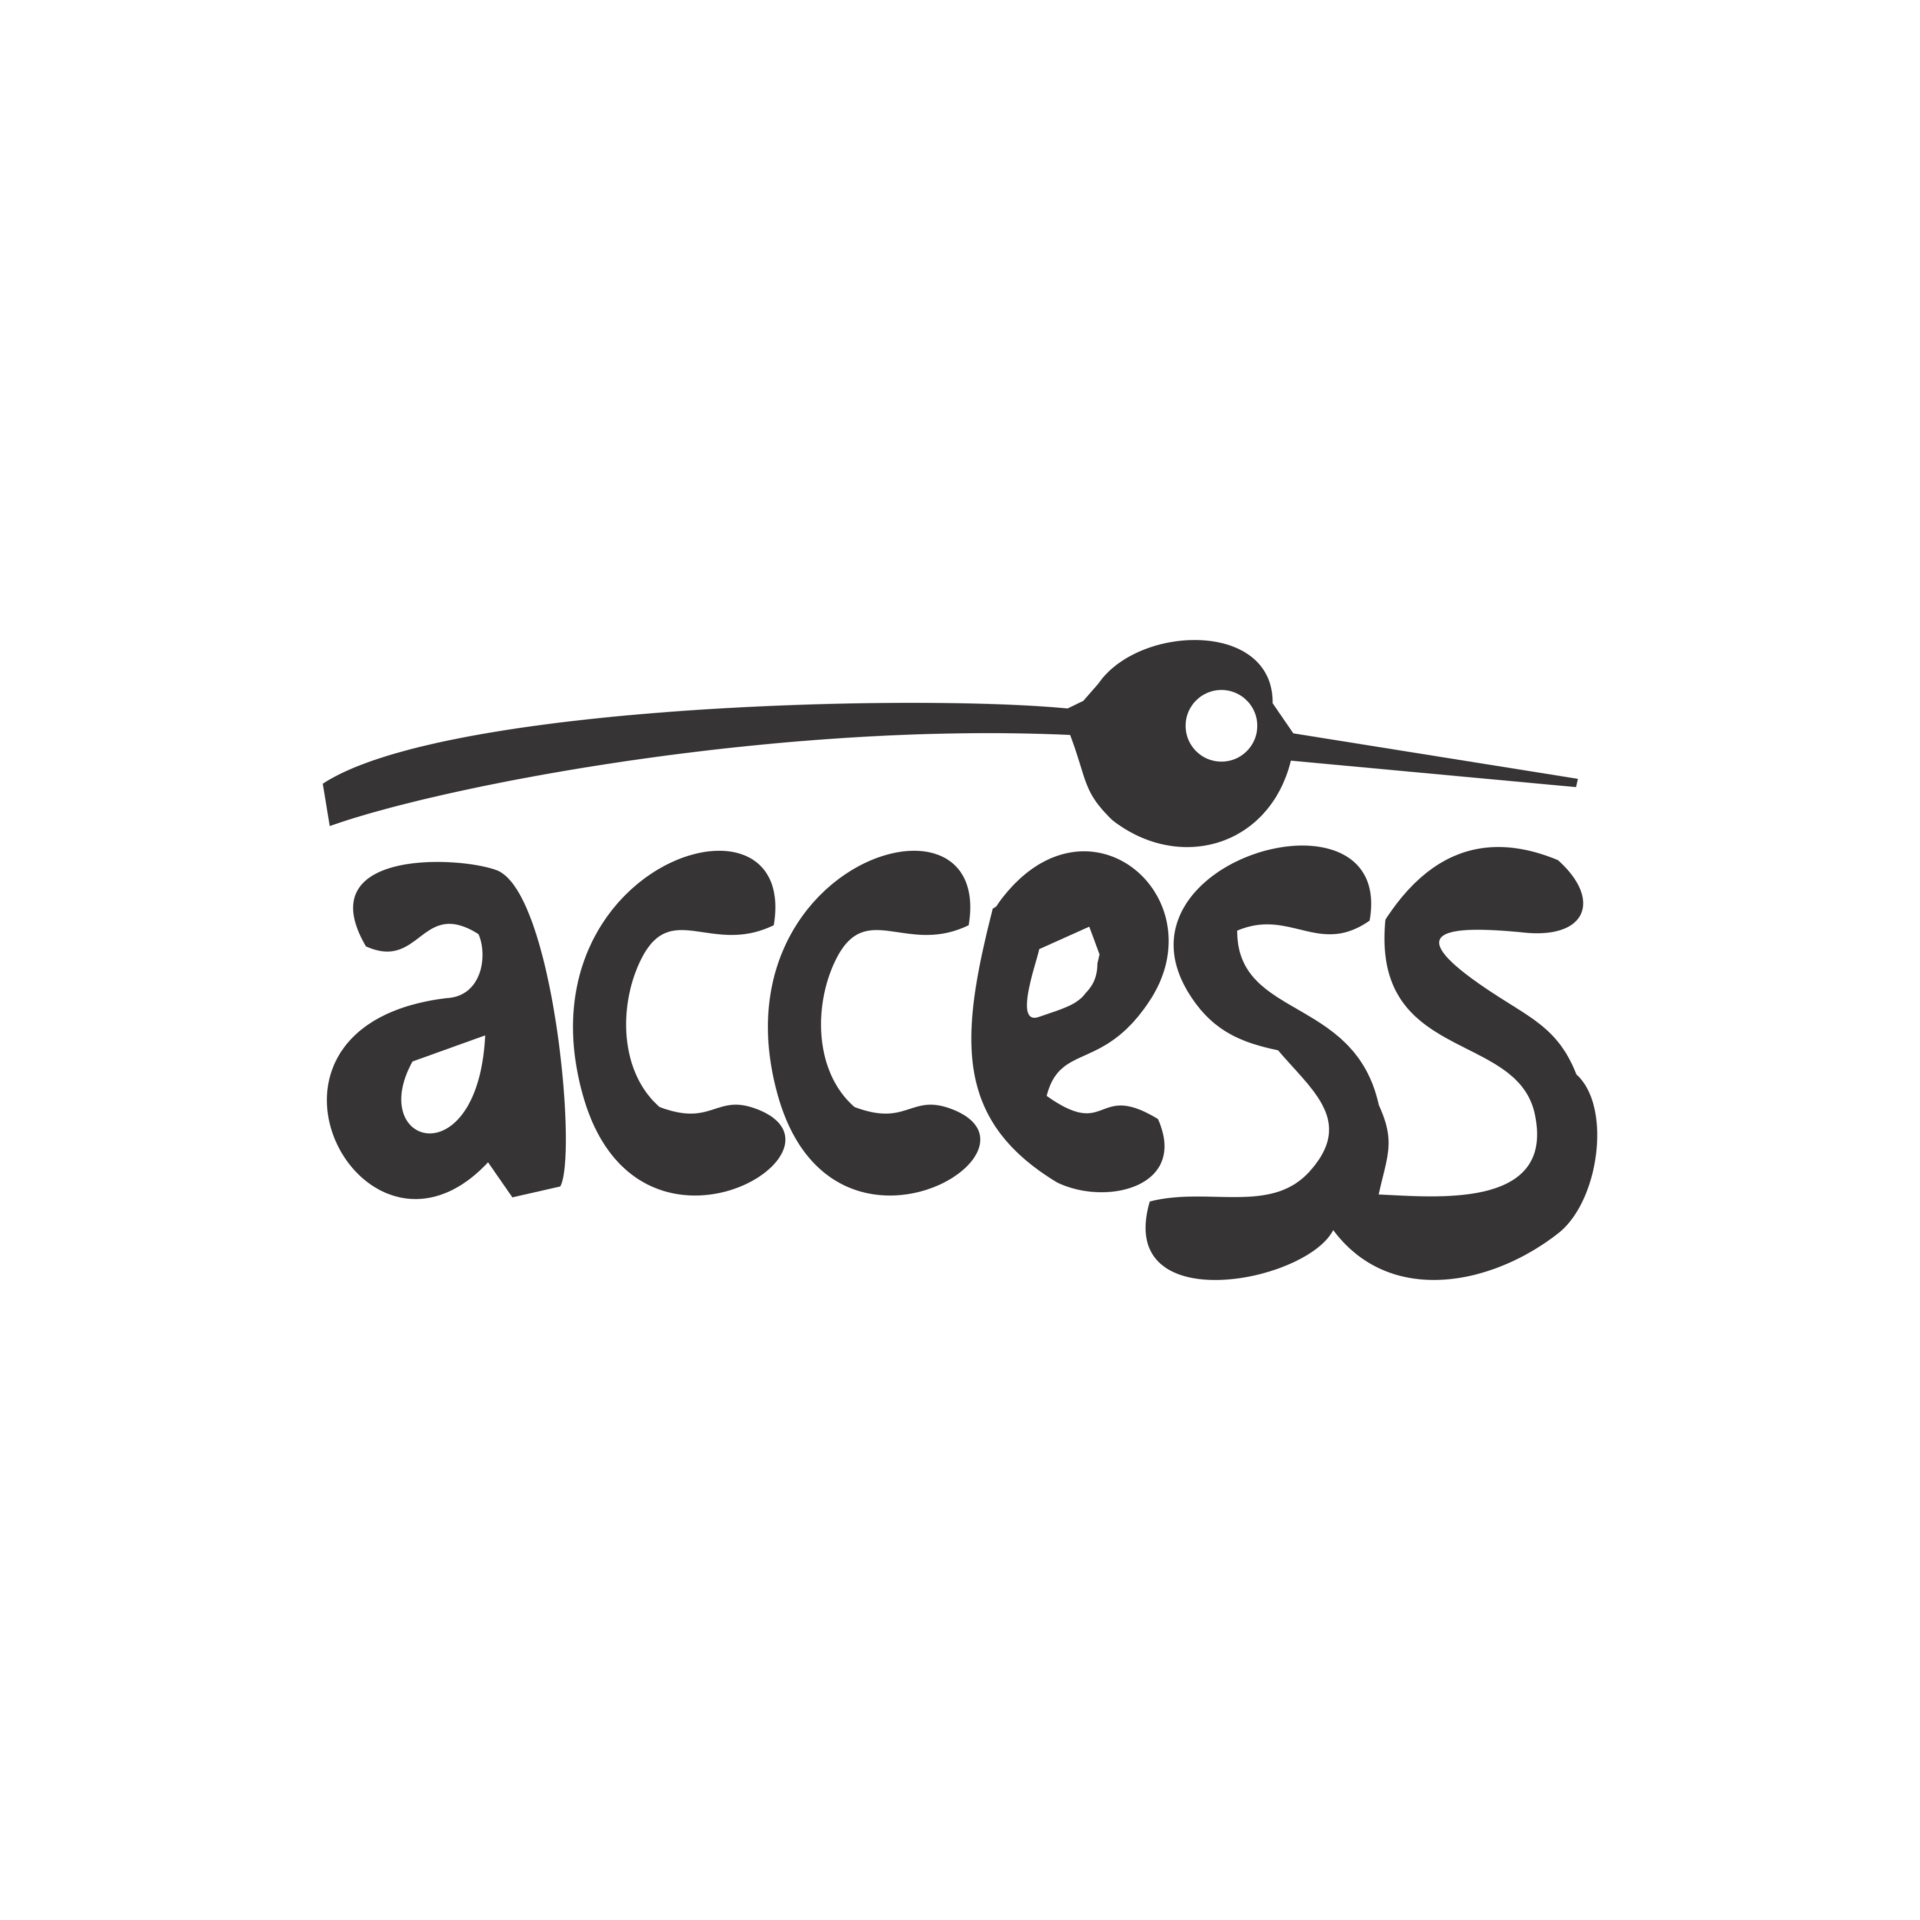 ACCESS : Brand Short Description Type Here.